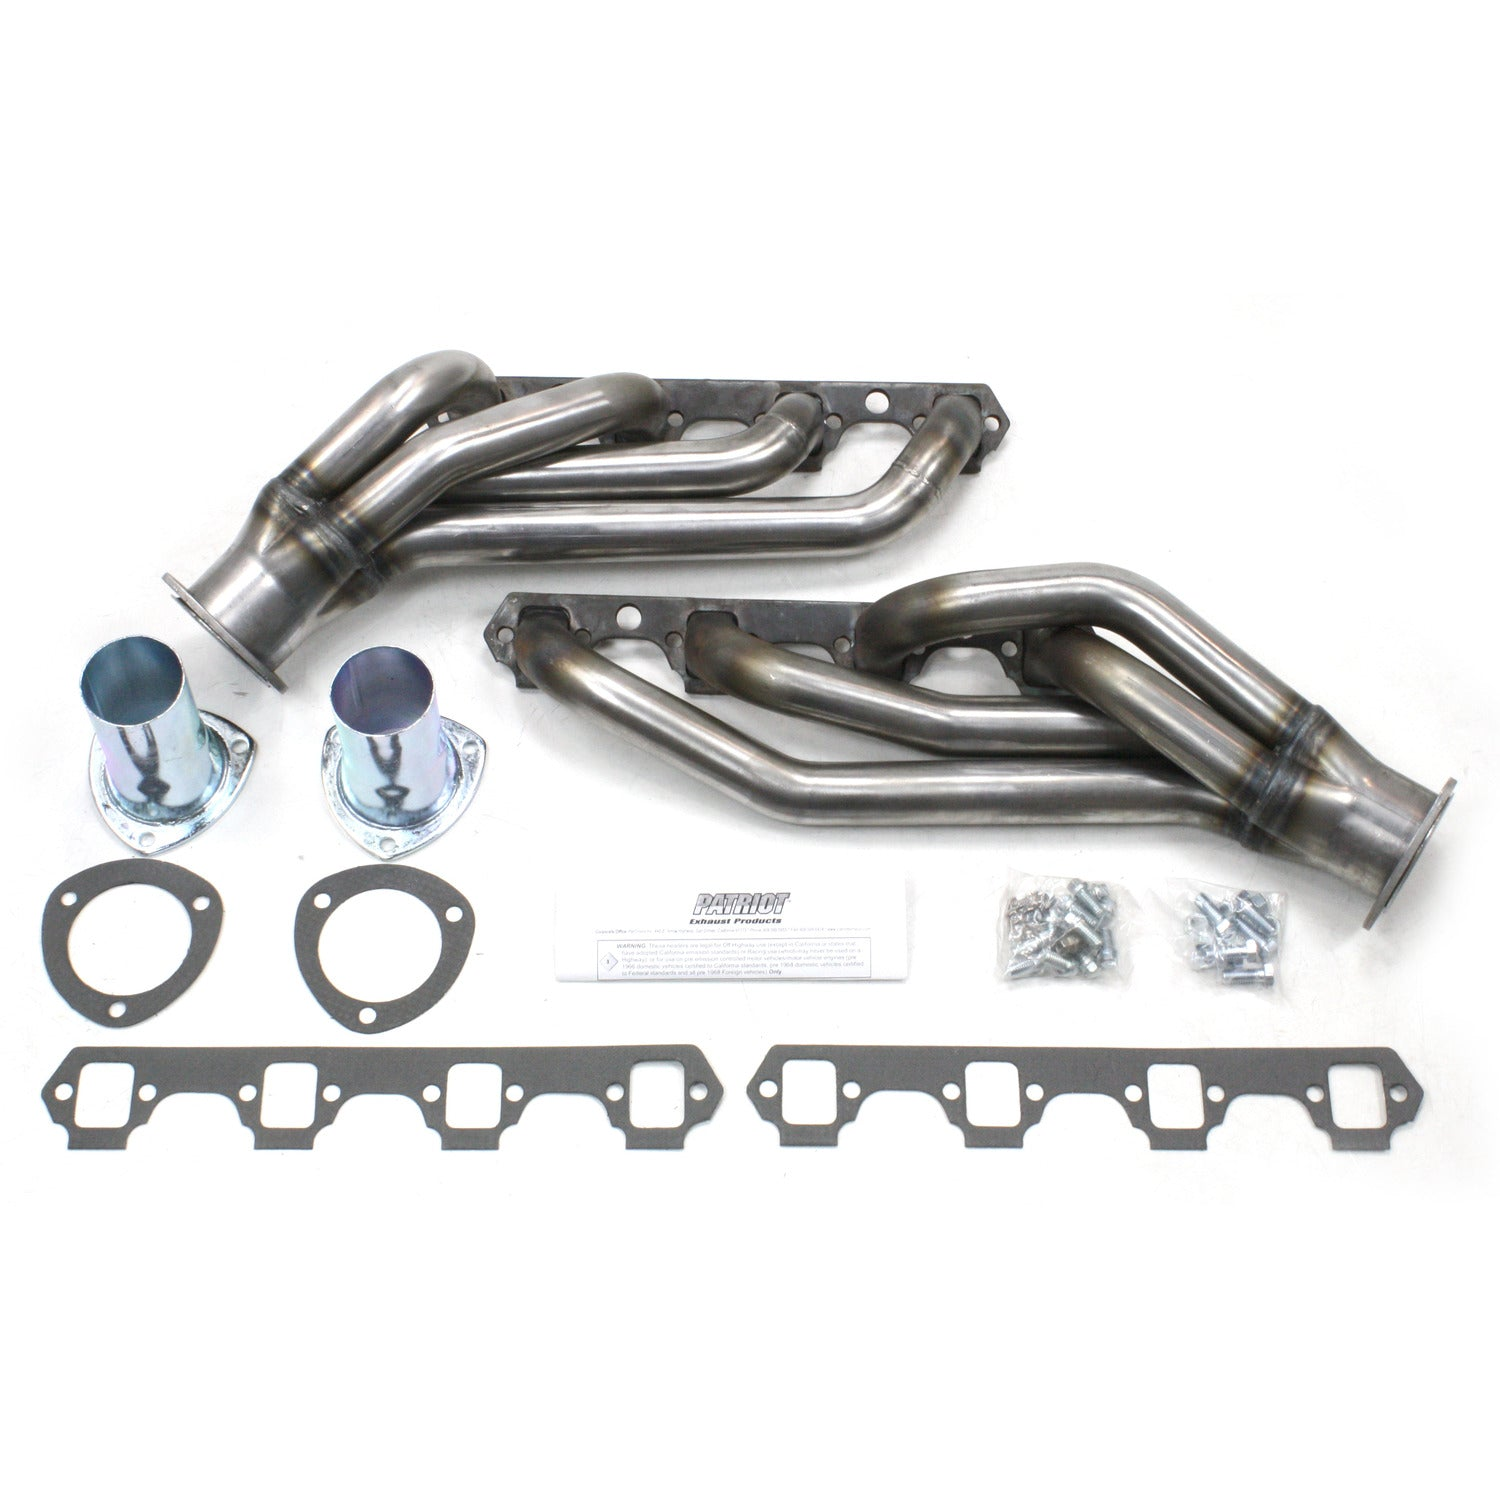 "Patriot Exhaust H8433 1 5/8"" Clippster Header Ford Mustang Small Block Ford 64-73 Raw Steel"